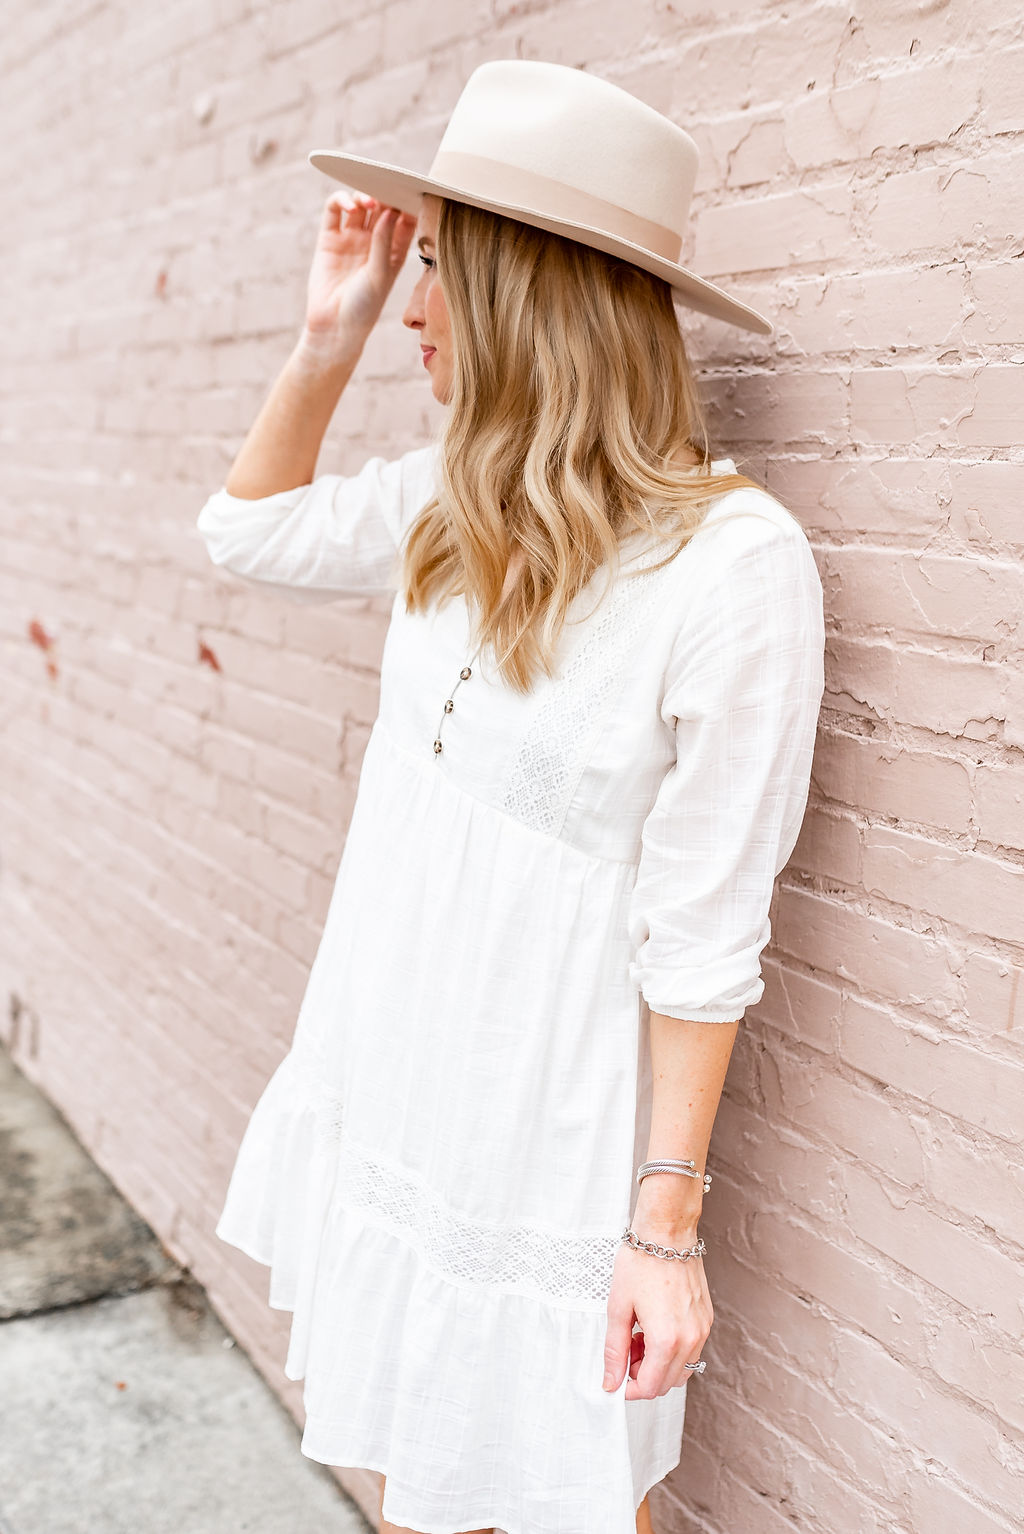 How to Style Your Favorite White Summer Dress for Fall